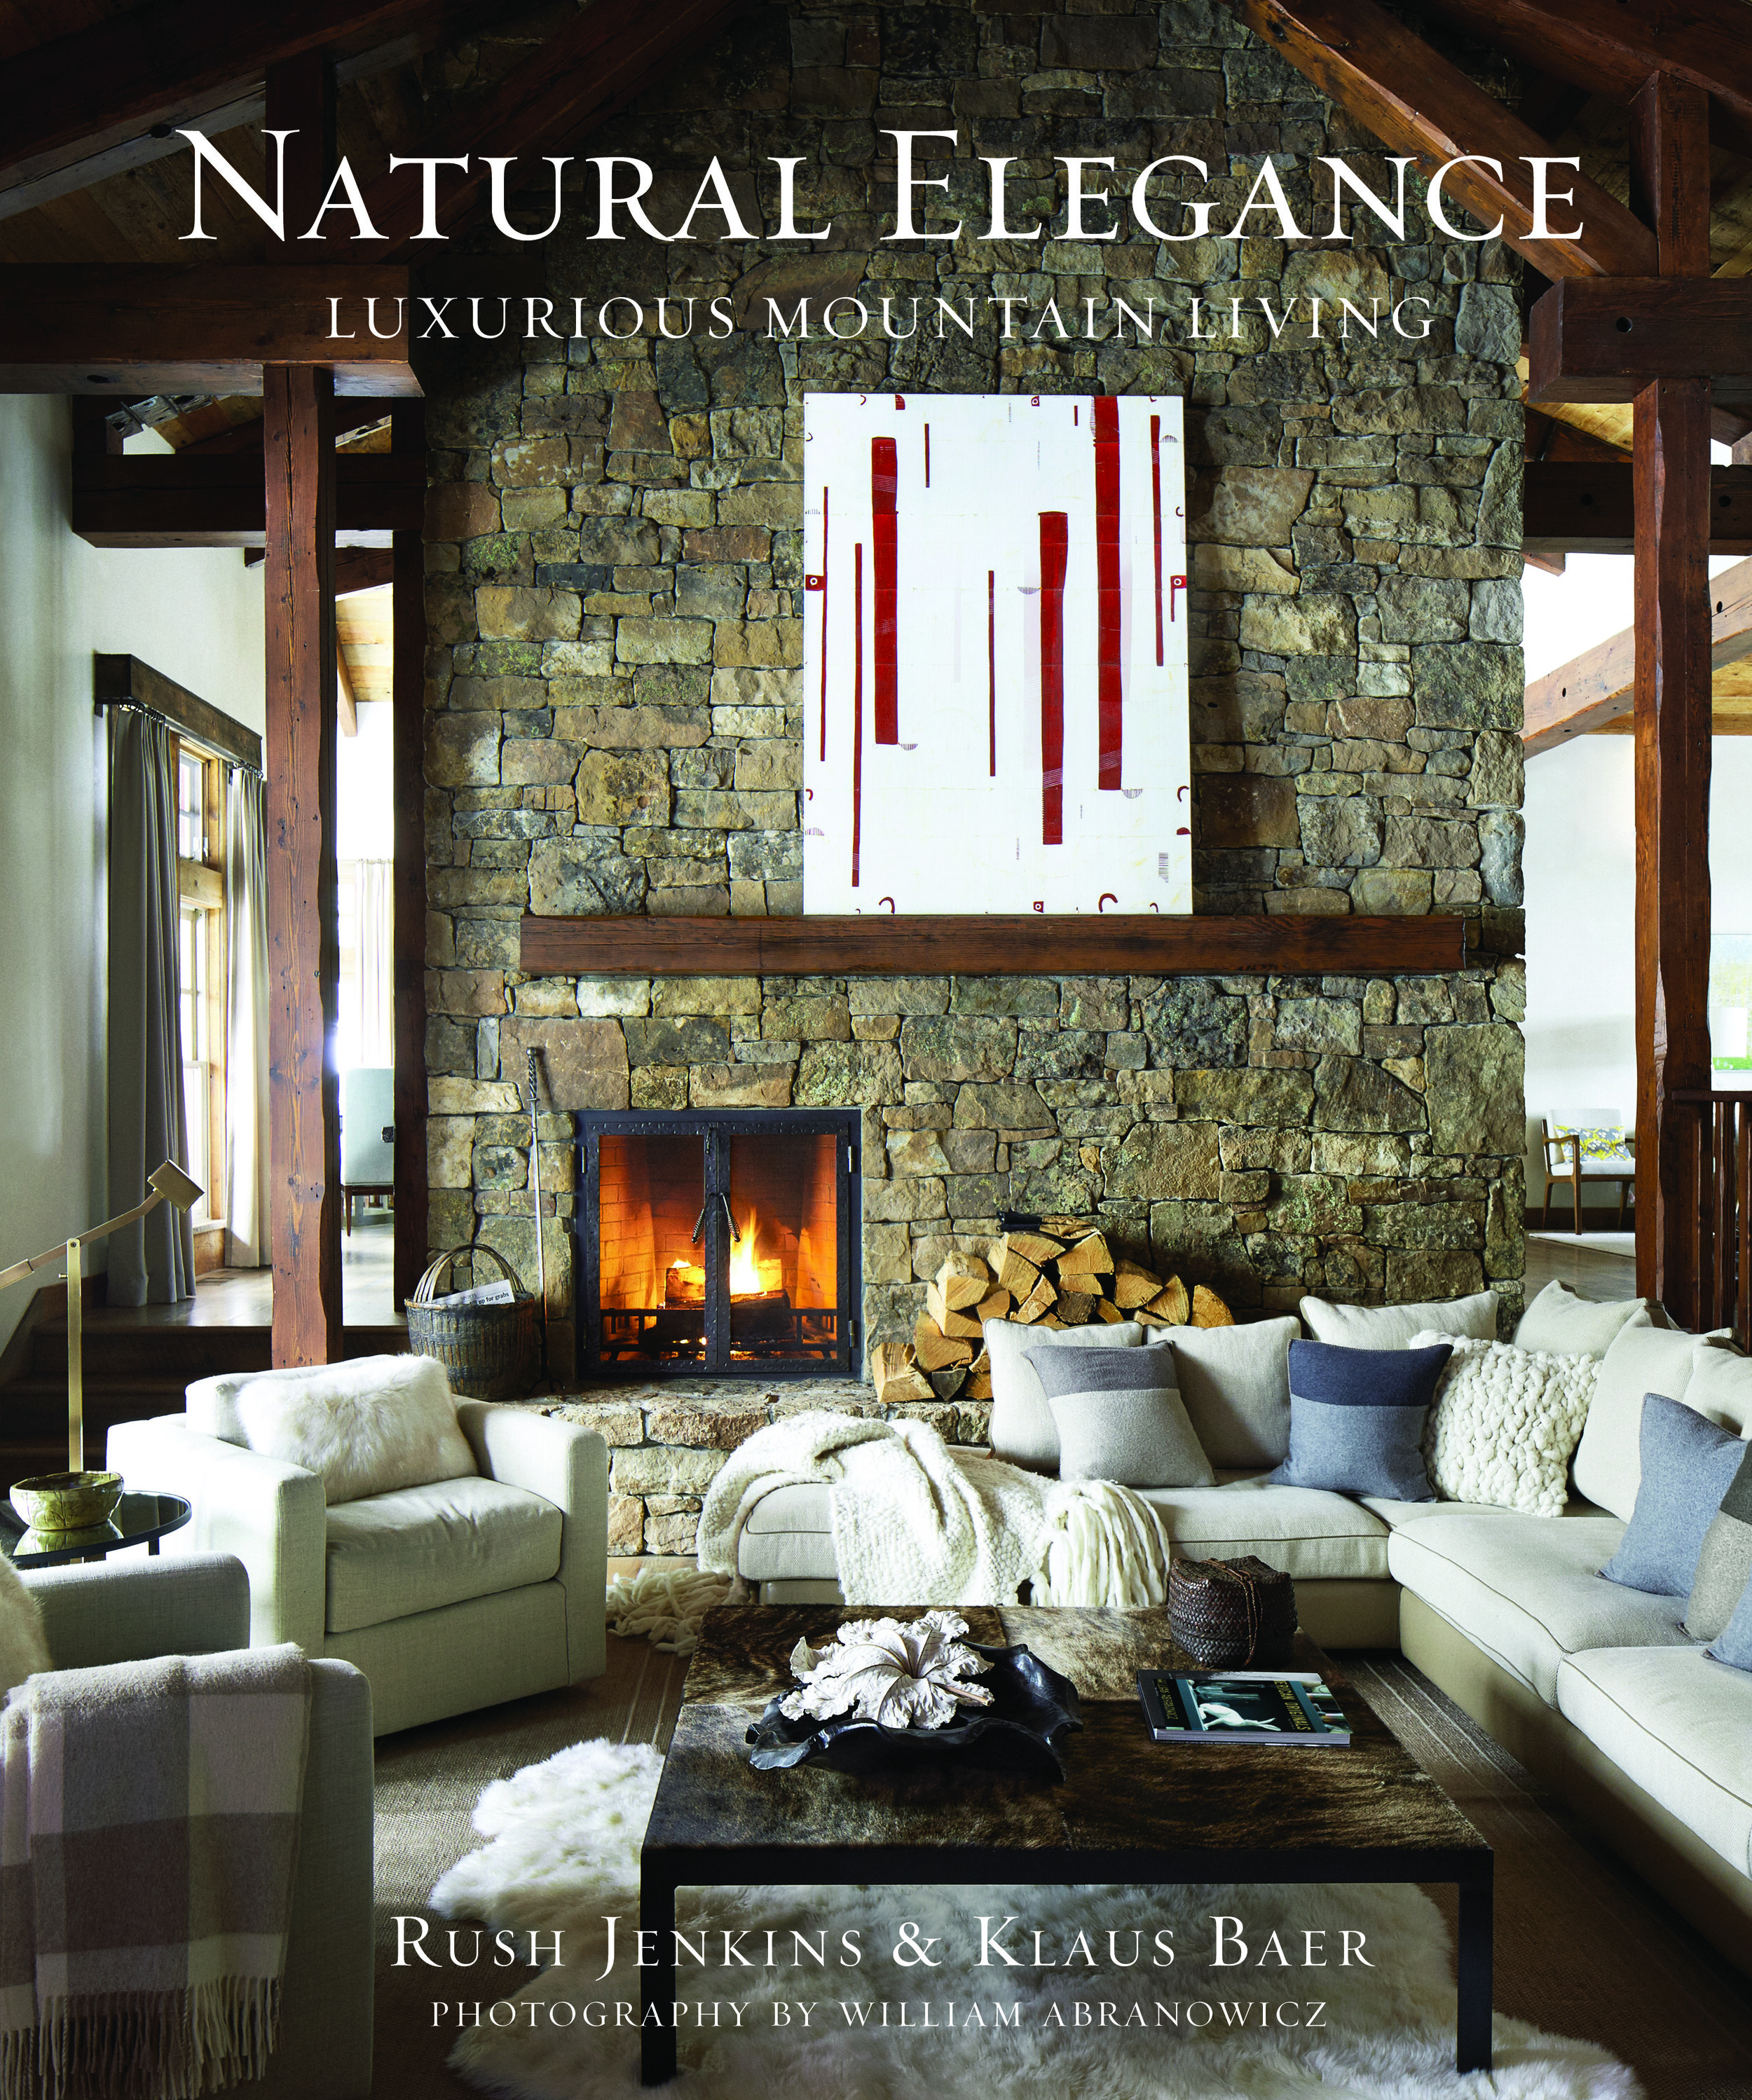 Natural Elegance  showcases the award-winning interiors of WRJ Design, headquartered in Jackson Hole, Wyoming, and led by Rush Jenkins and Klaus Baer. The firm's homes are set against the backdrop of dramatic western landscapes from the Rockies to the Pacific. Their interiors are infused with a unique elegance—one versed in the beauty of the wilderness combined with sophisticated contemporary design. Juxtaposing a warm palette with rugged elements, they create homes that have a deep connection to the natural world just outside the windows. Illustrated with photographs by the masterly William Abranowicz, the book features more than a dozen gloriously sited houses decorated in WRJ's signature rustic yet refined style.